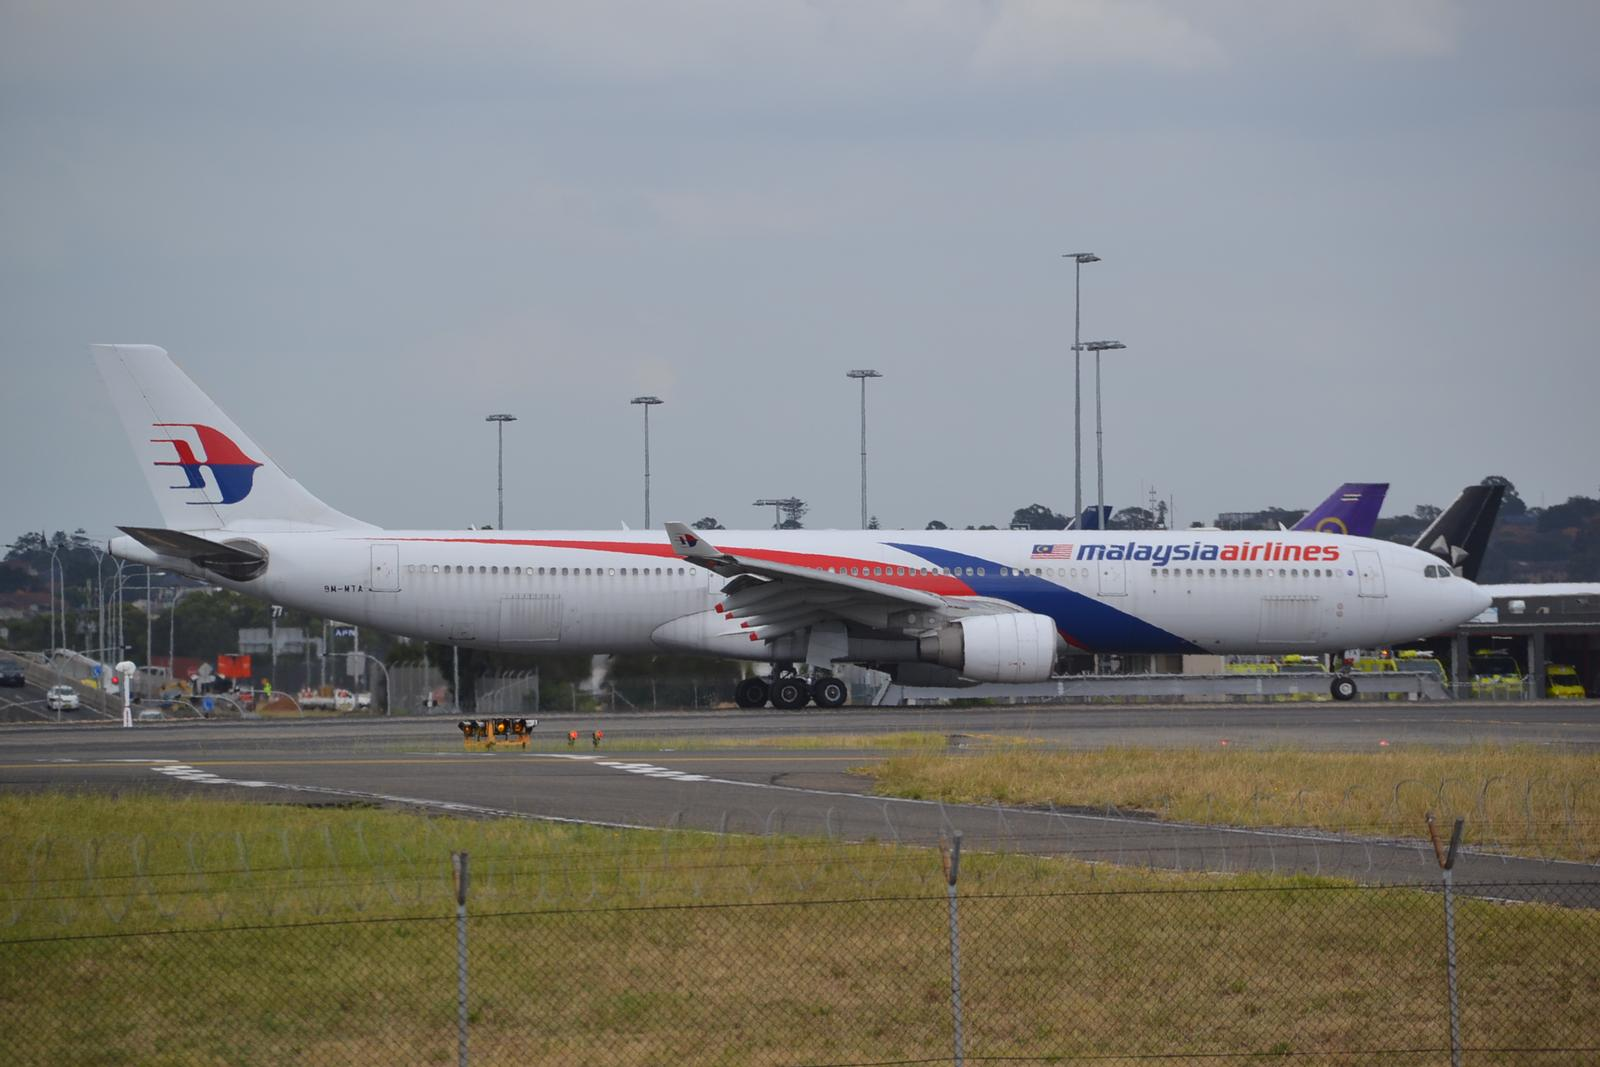 Malaysia Airlines Airbus A330-300.